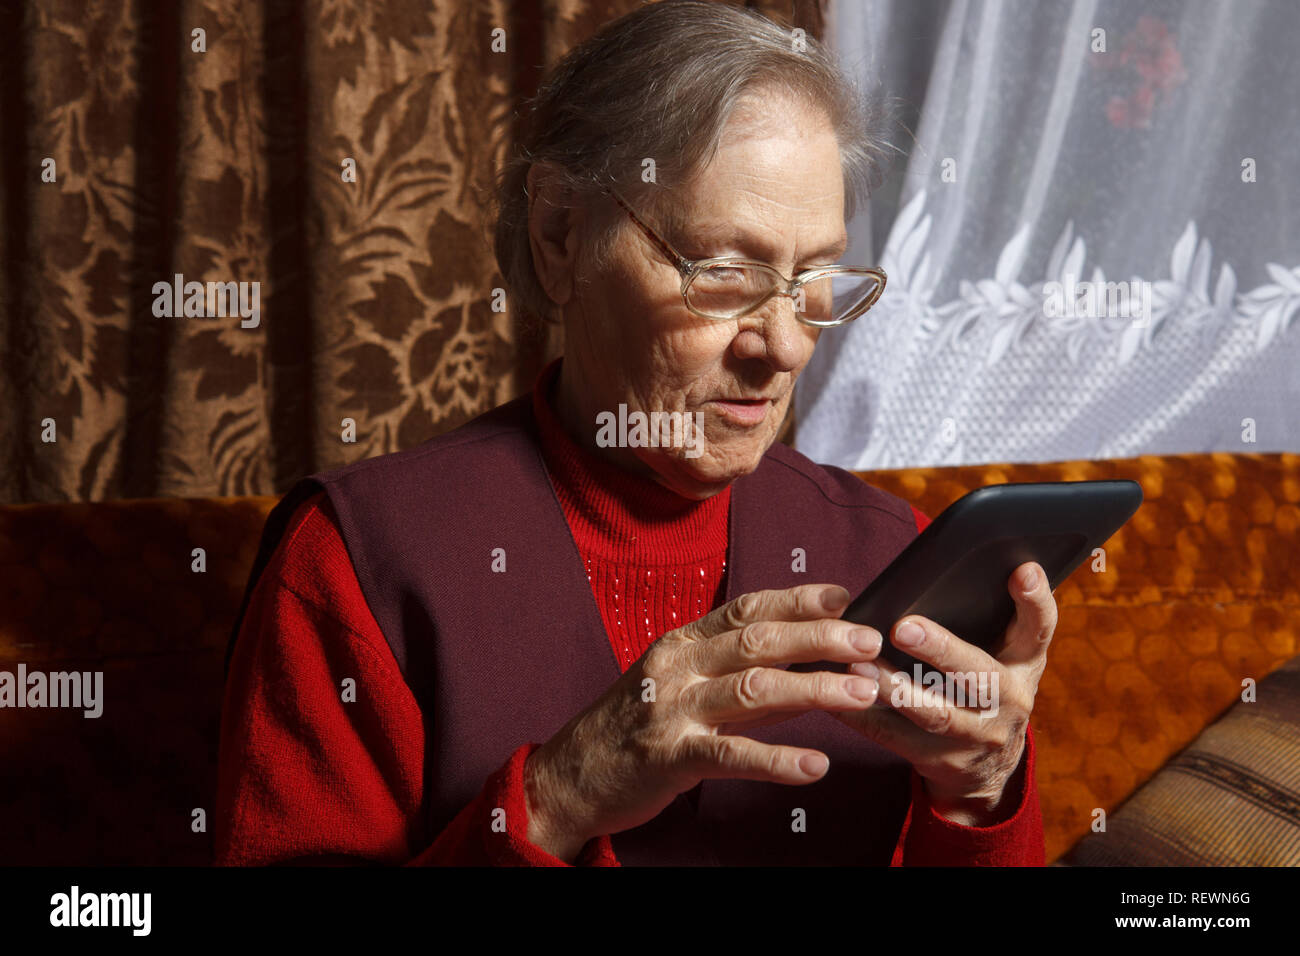 old woman using ebook reader - Stock Image